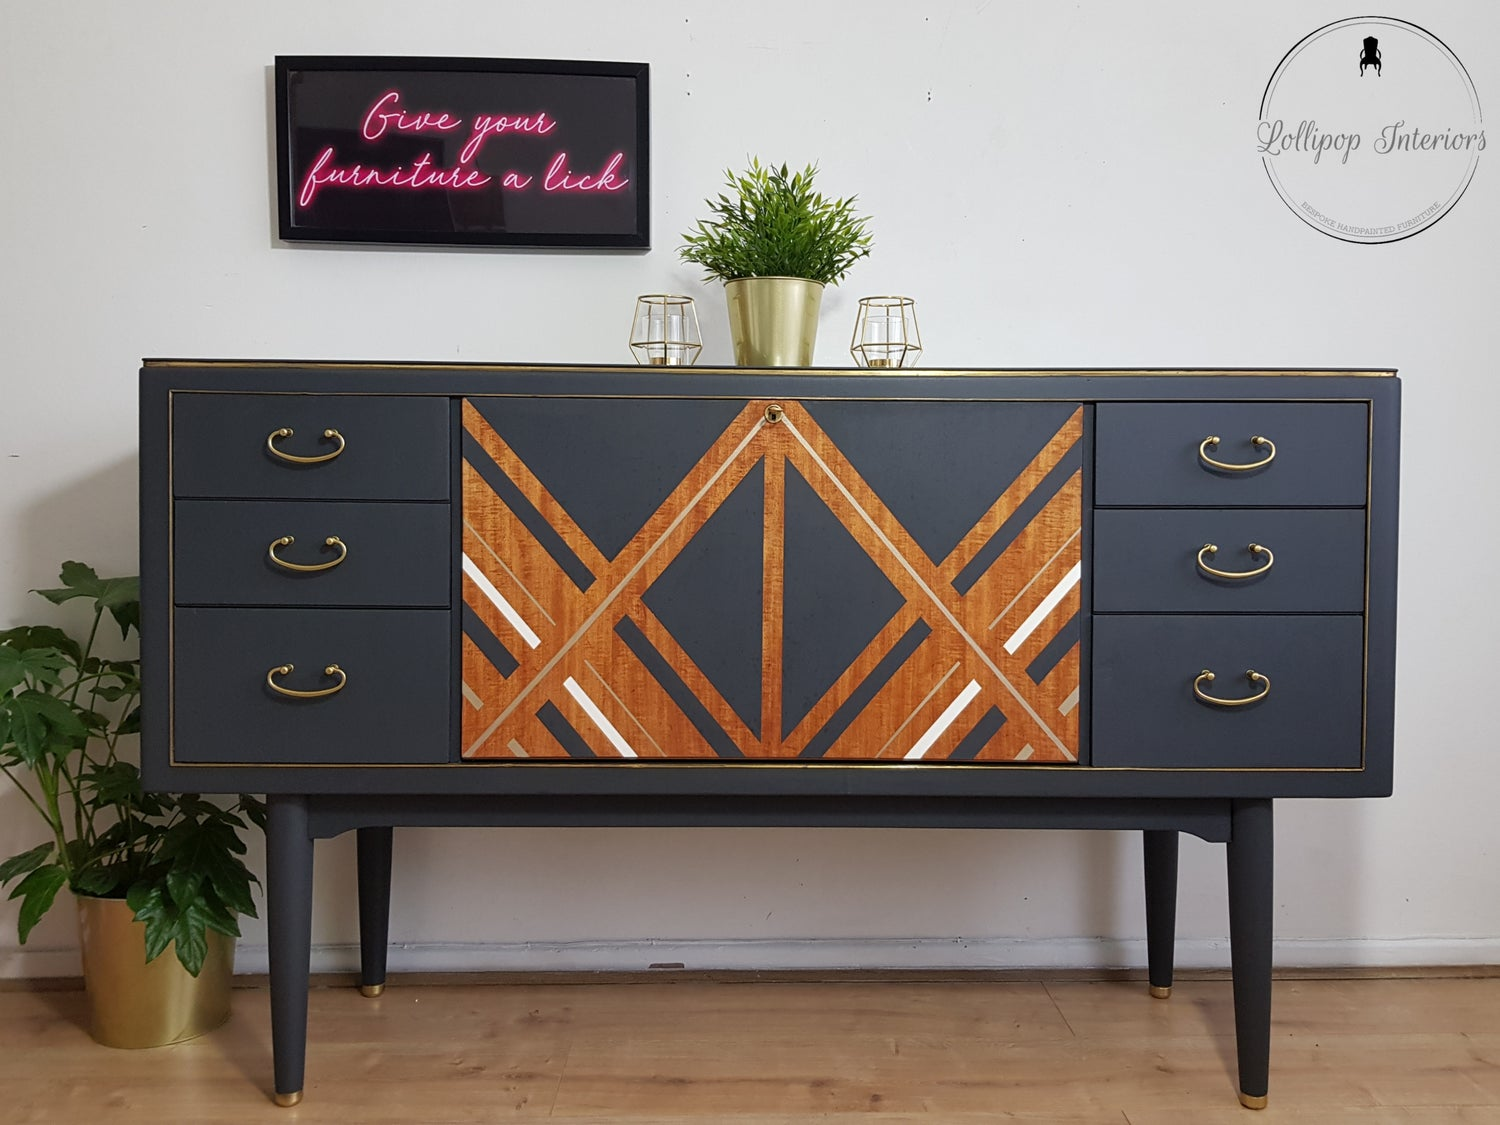 Image of Mid century modern sideboard in ash grey